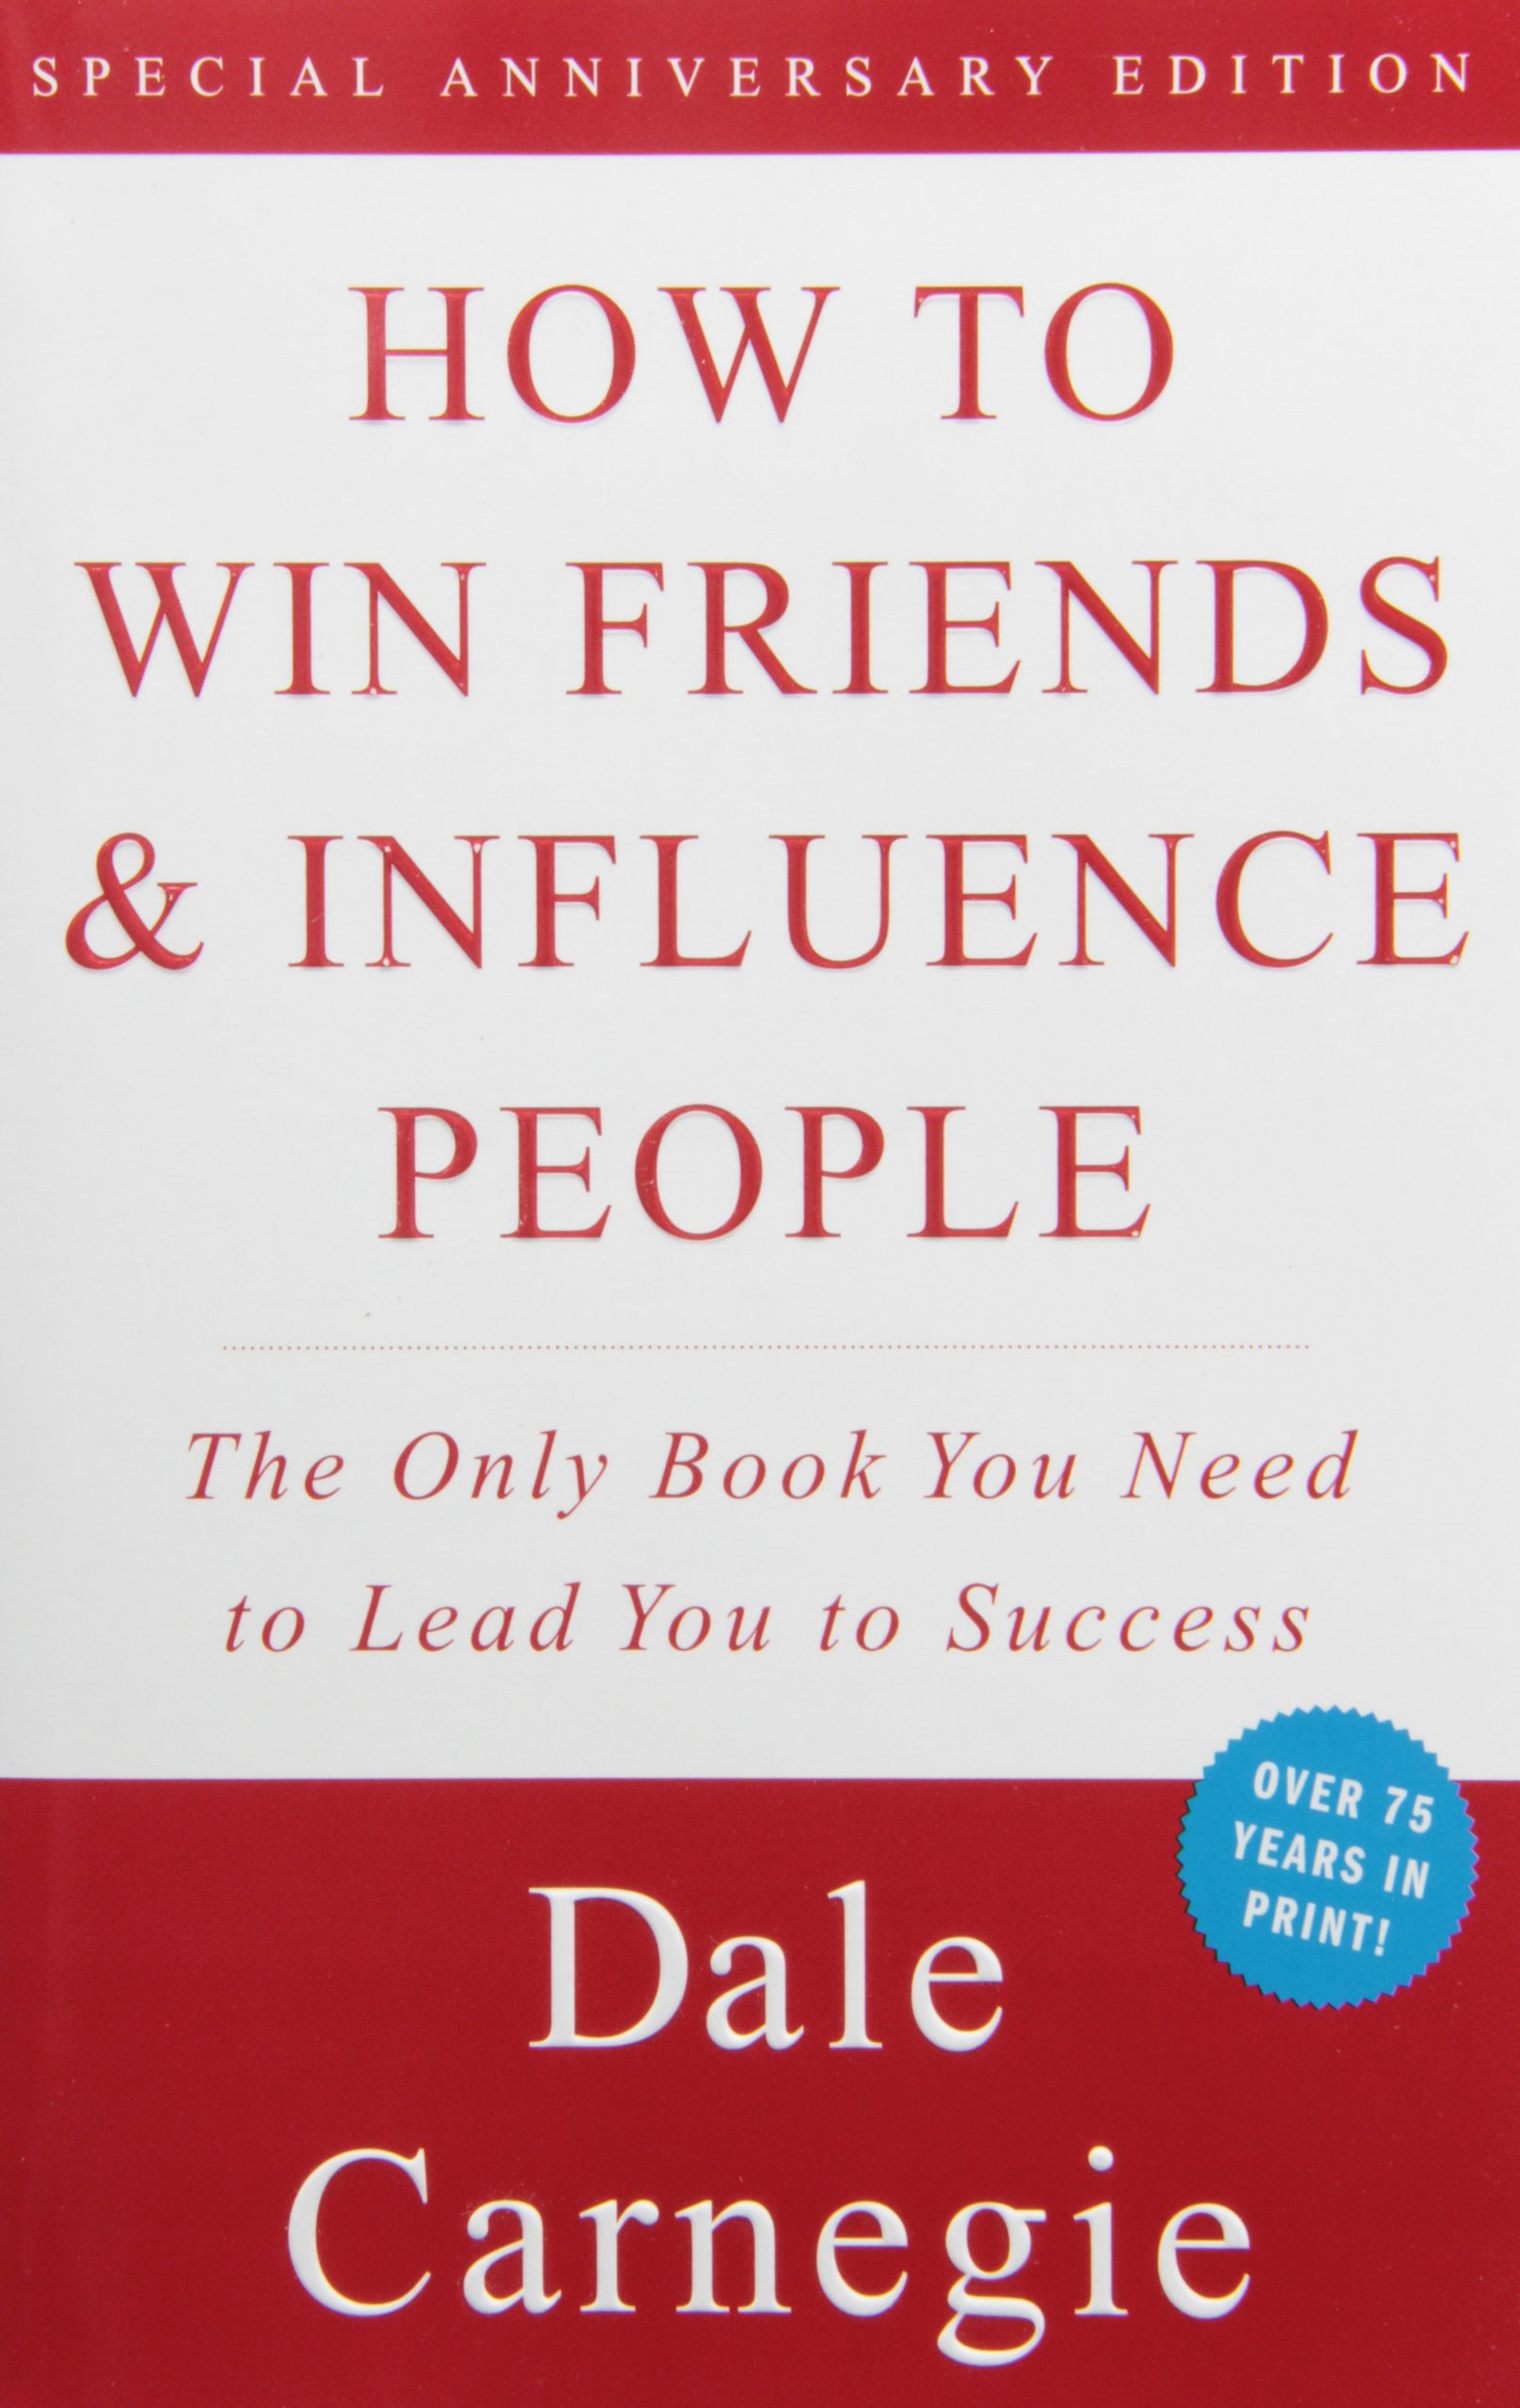 how to win friends and influence people - book cover